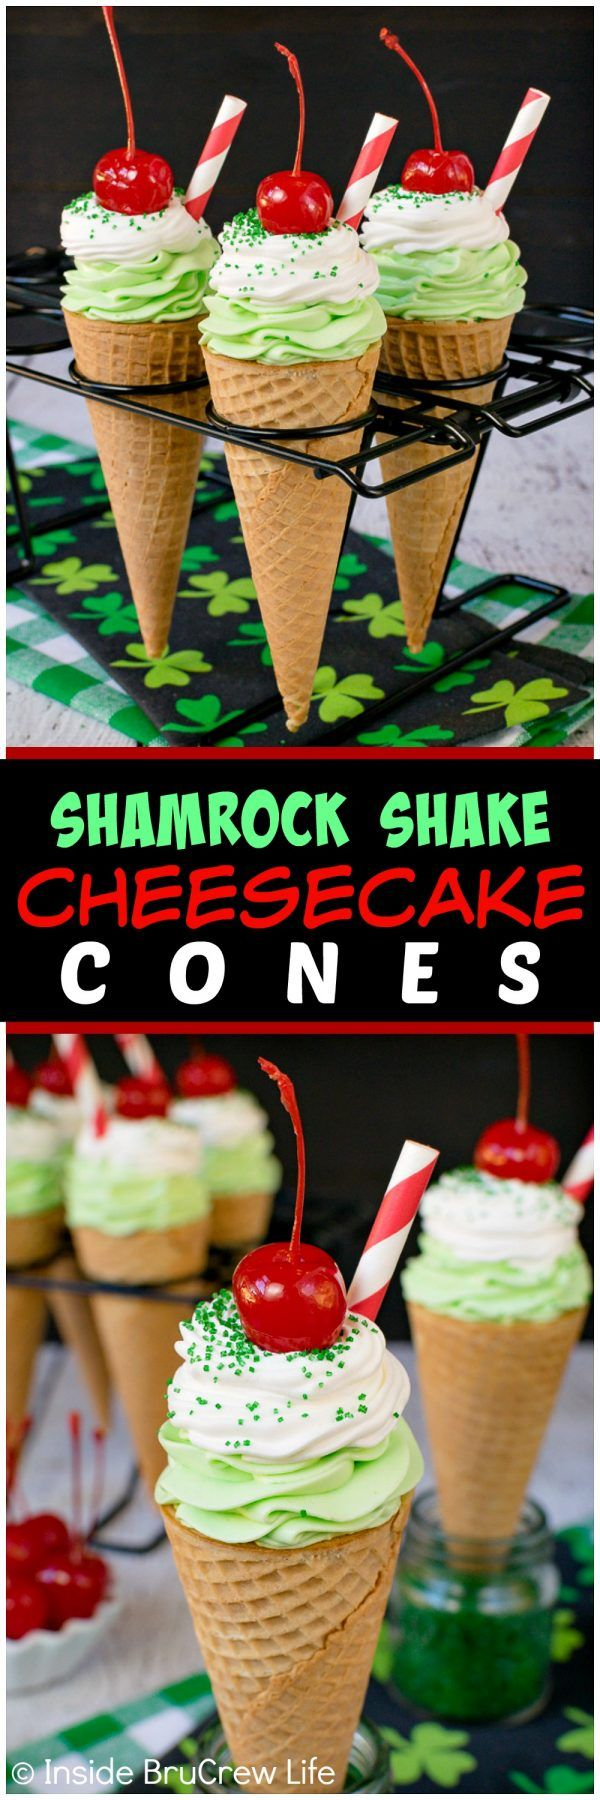 No Bake Shamrock Shake Cheesecake Cones - easy creamy mint cheesecake swirled in cones and topped with green sugar, cherries, and a straw makes these look like the popular drink. Easy no bake recipe to enjoy! ~ Inside BruCrew Life